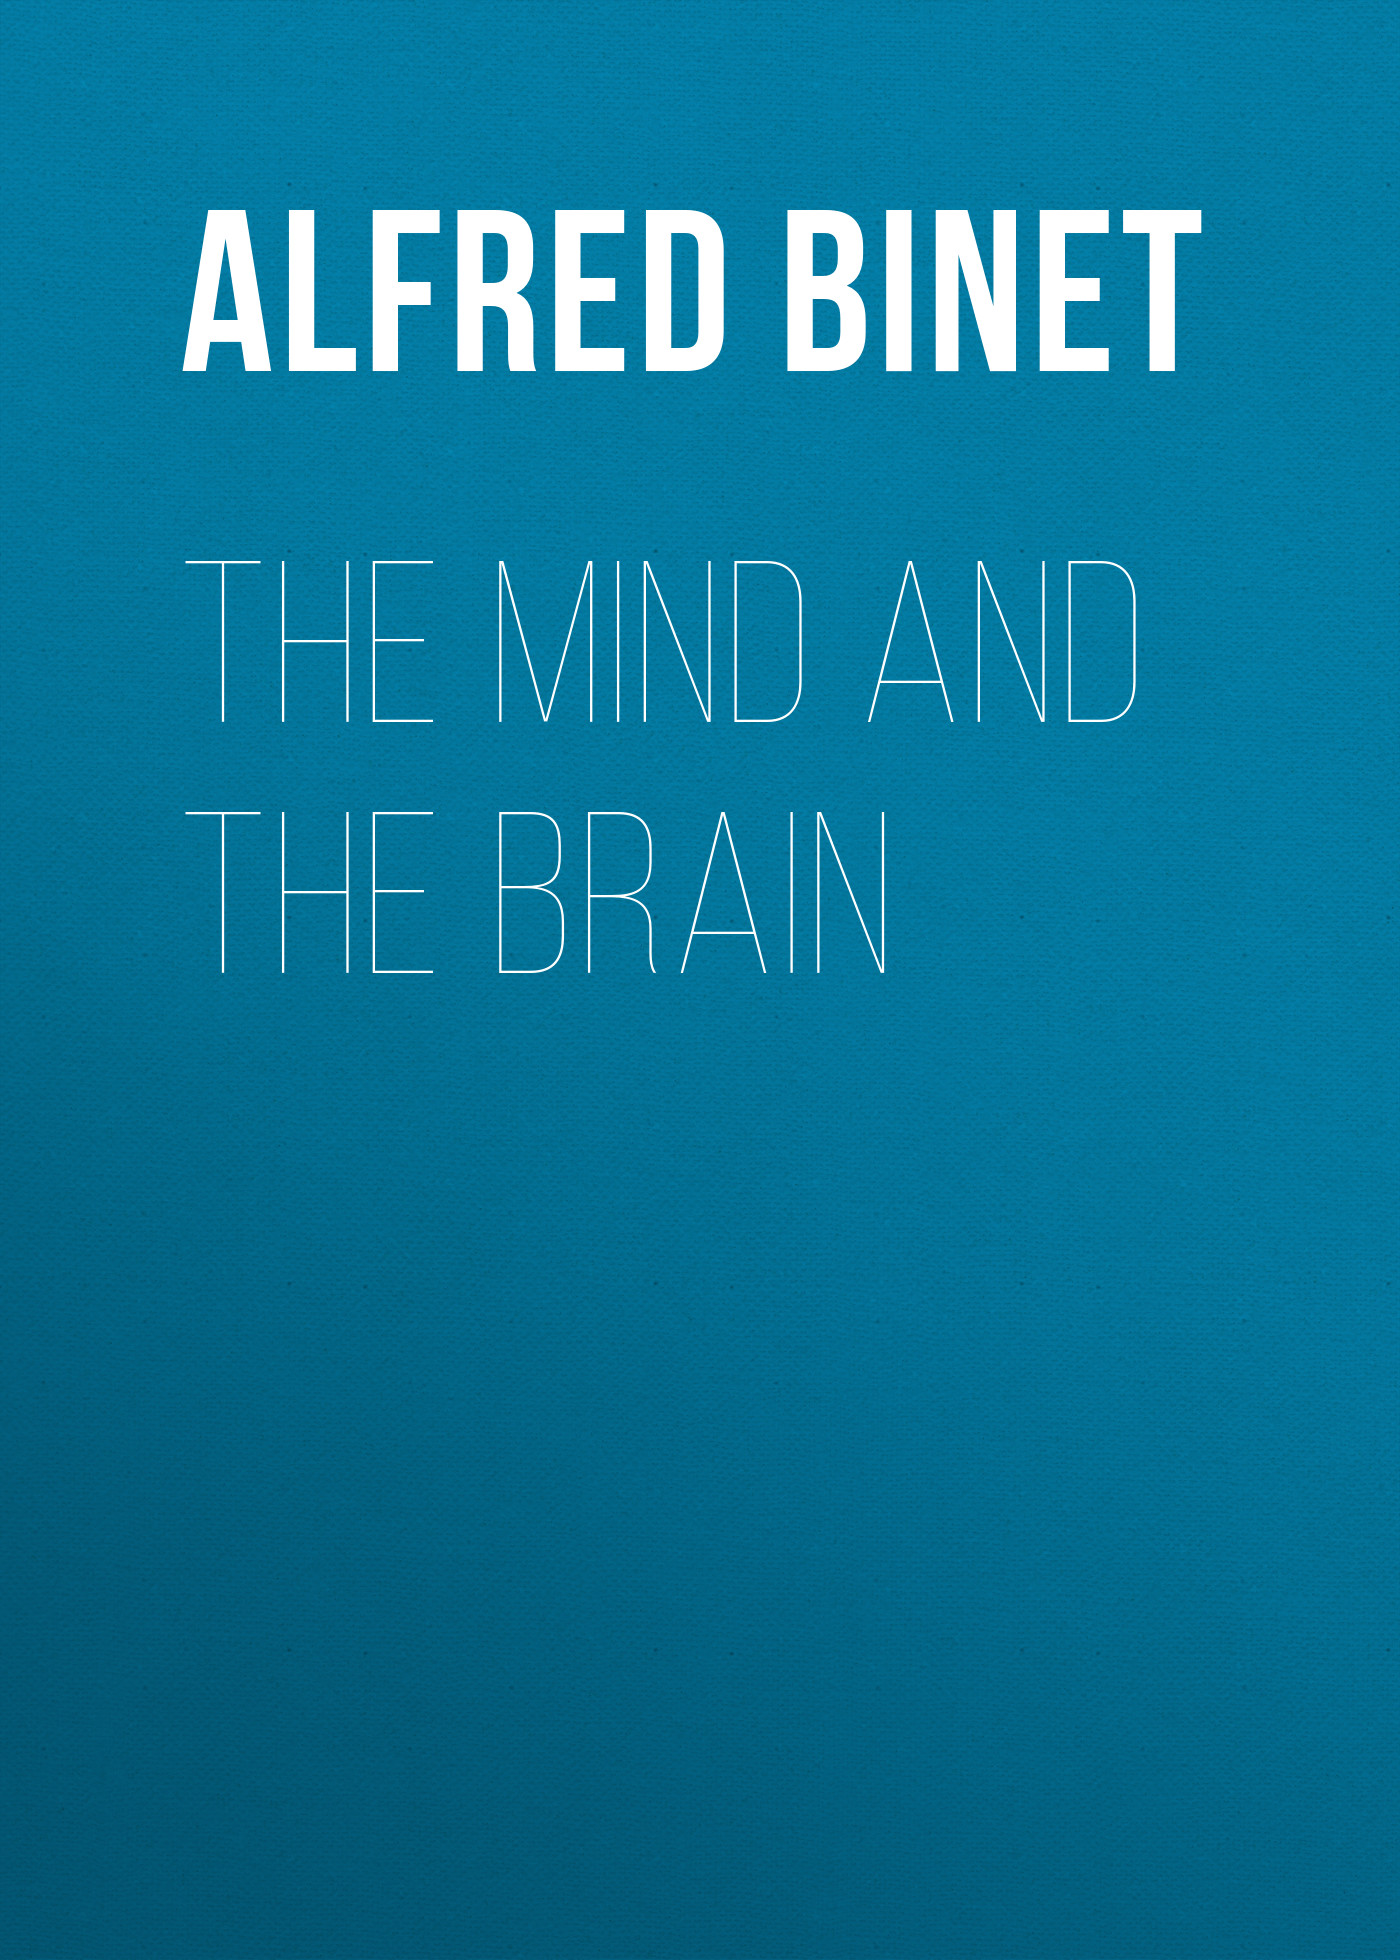 Alfred Binet The Mind and the Brain richard peterson l inside the investor s brain the power of mind over money isbn 9780470165904